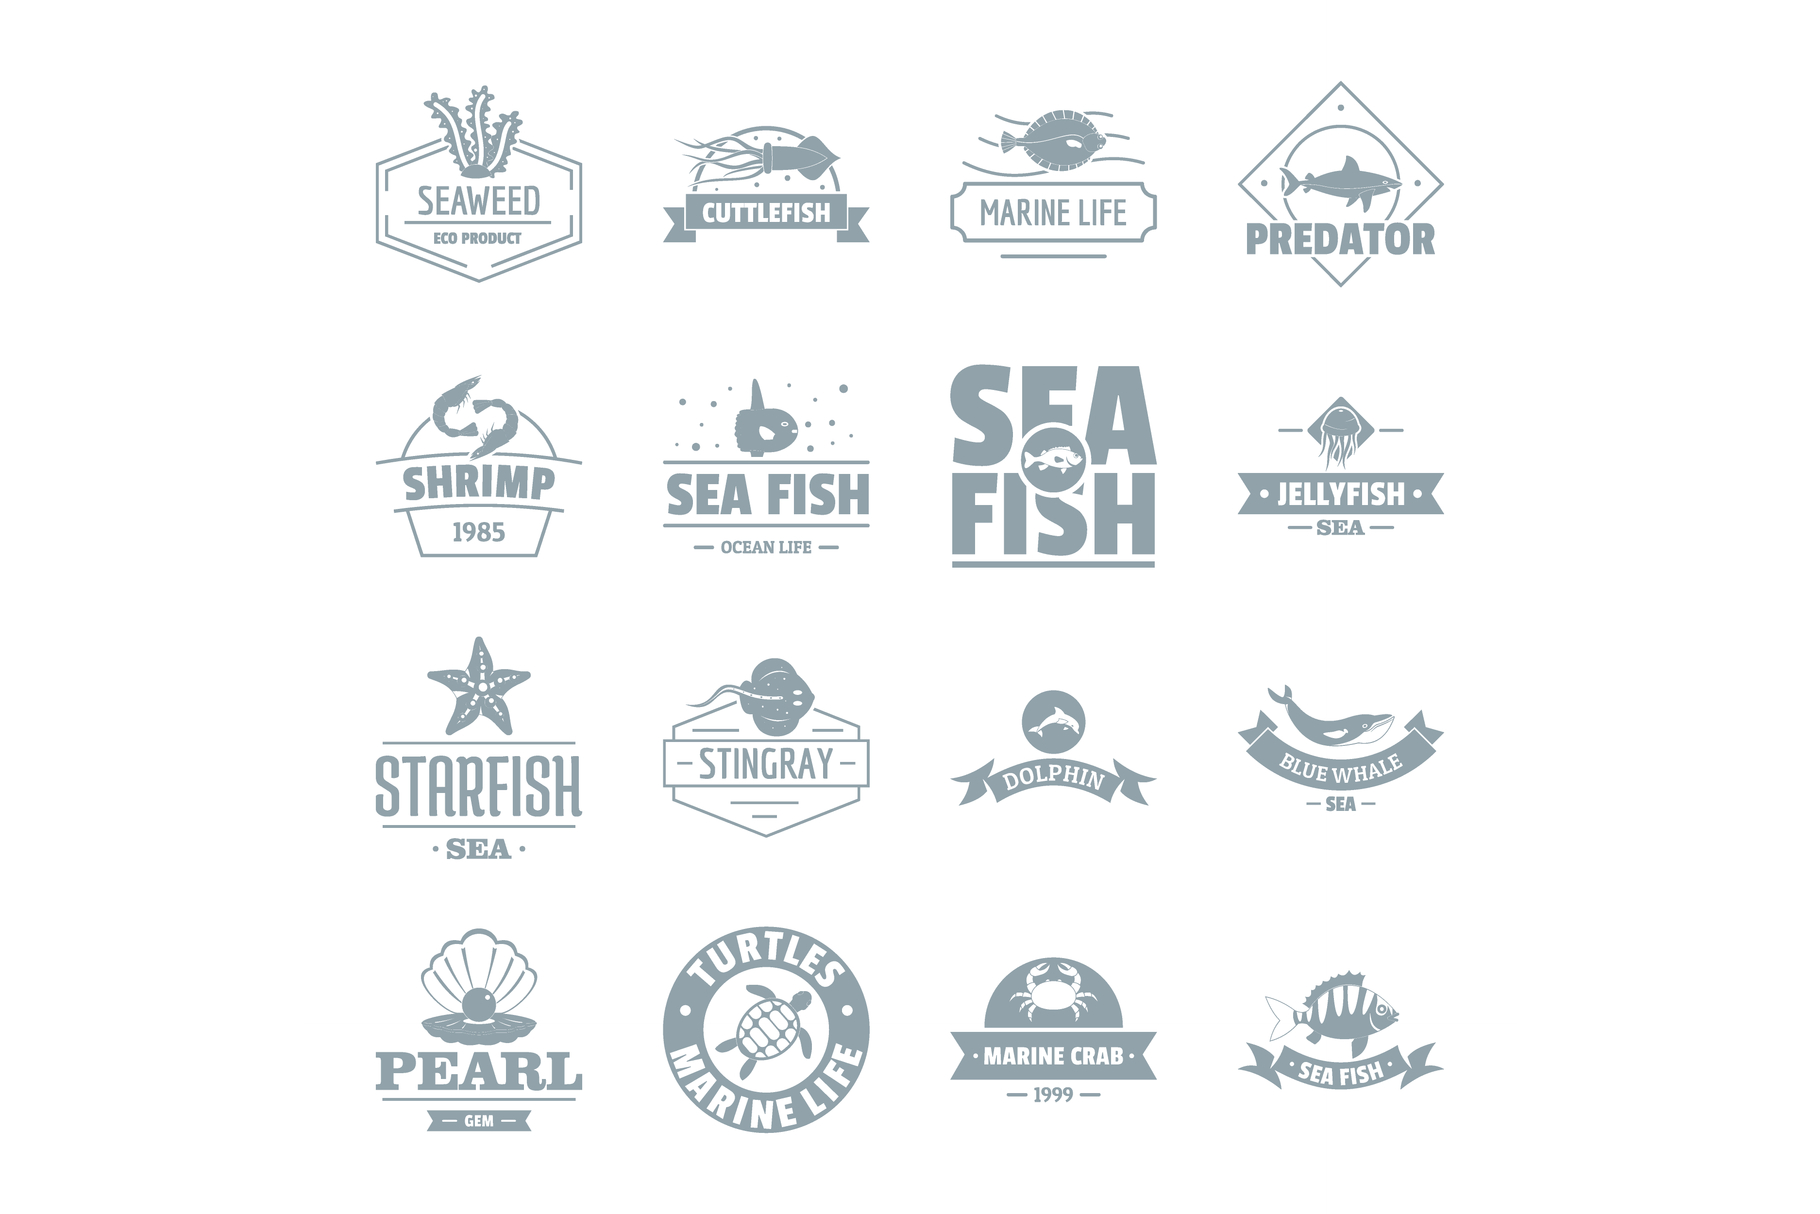 Fish sea logo icons set, simple style example image 1